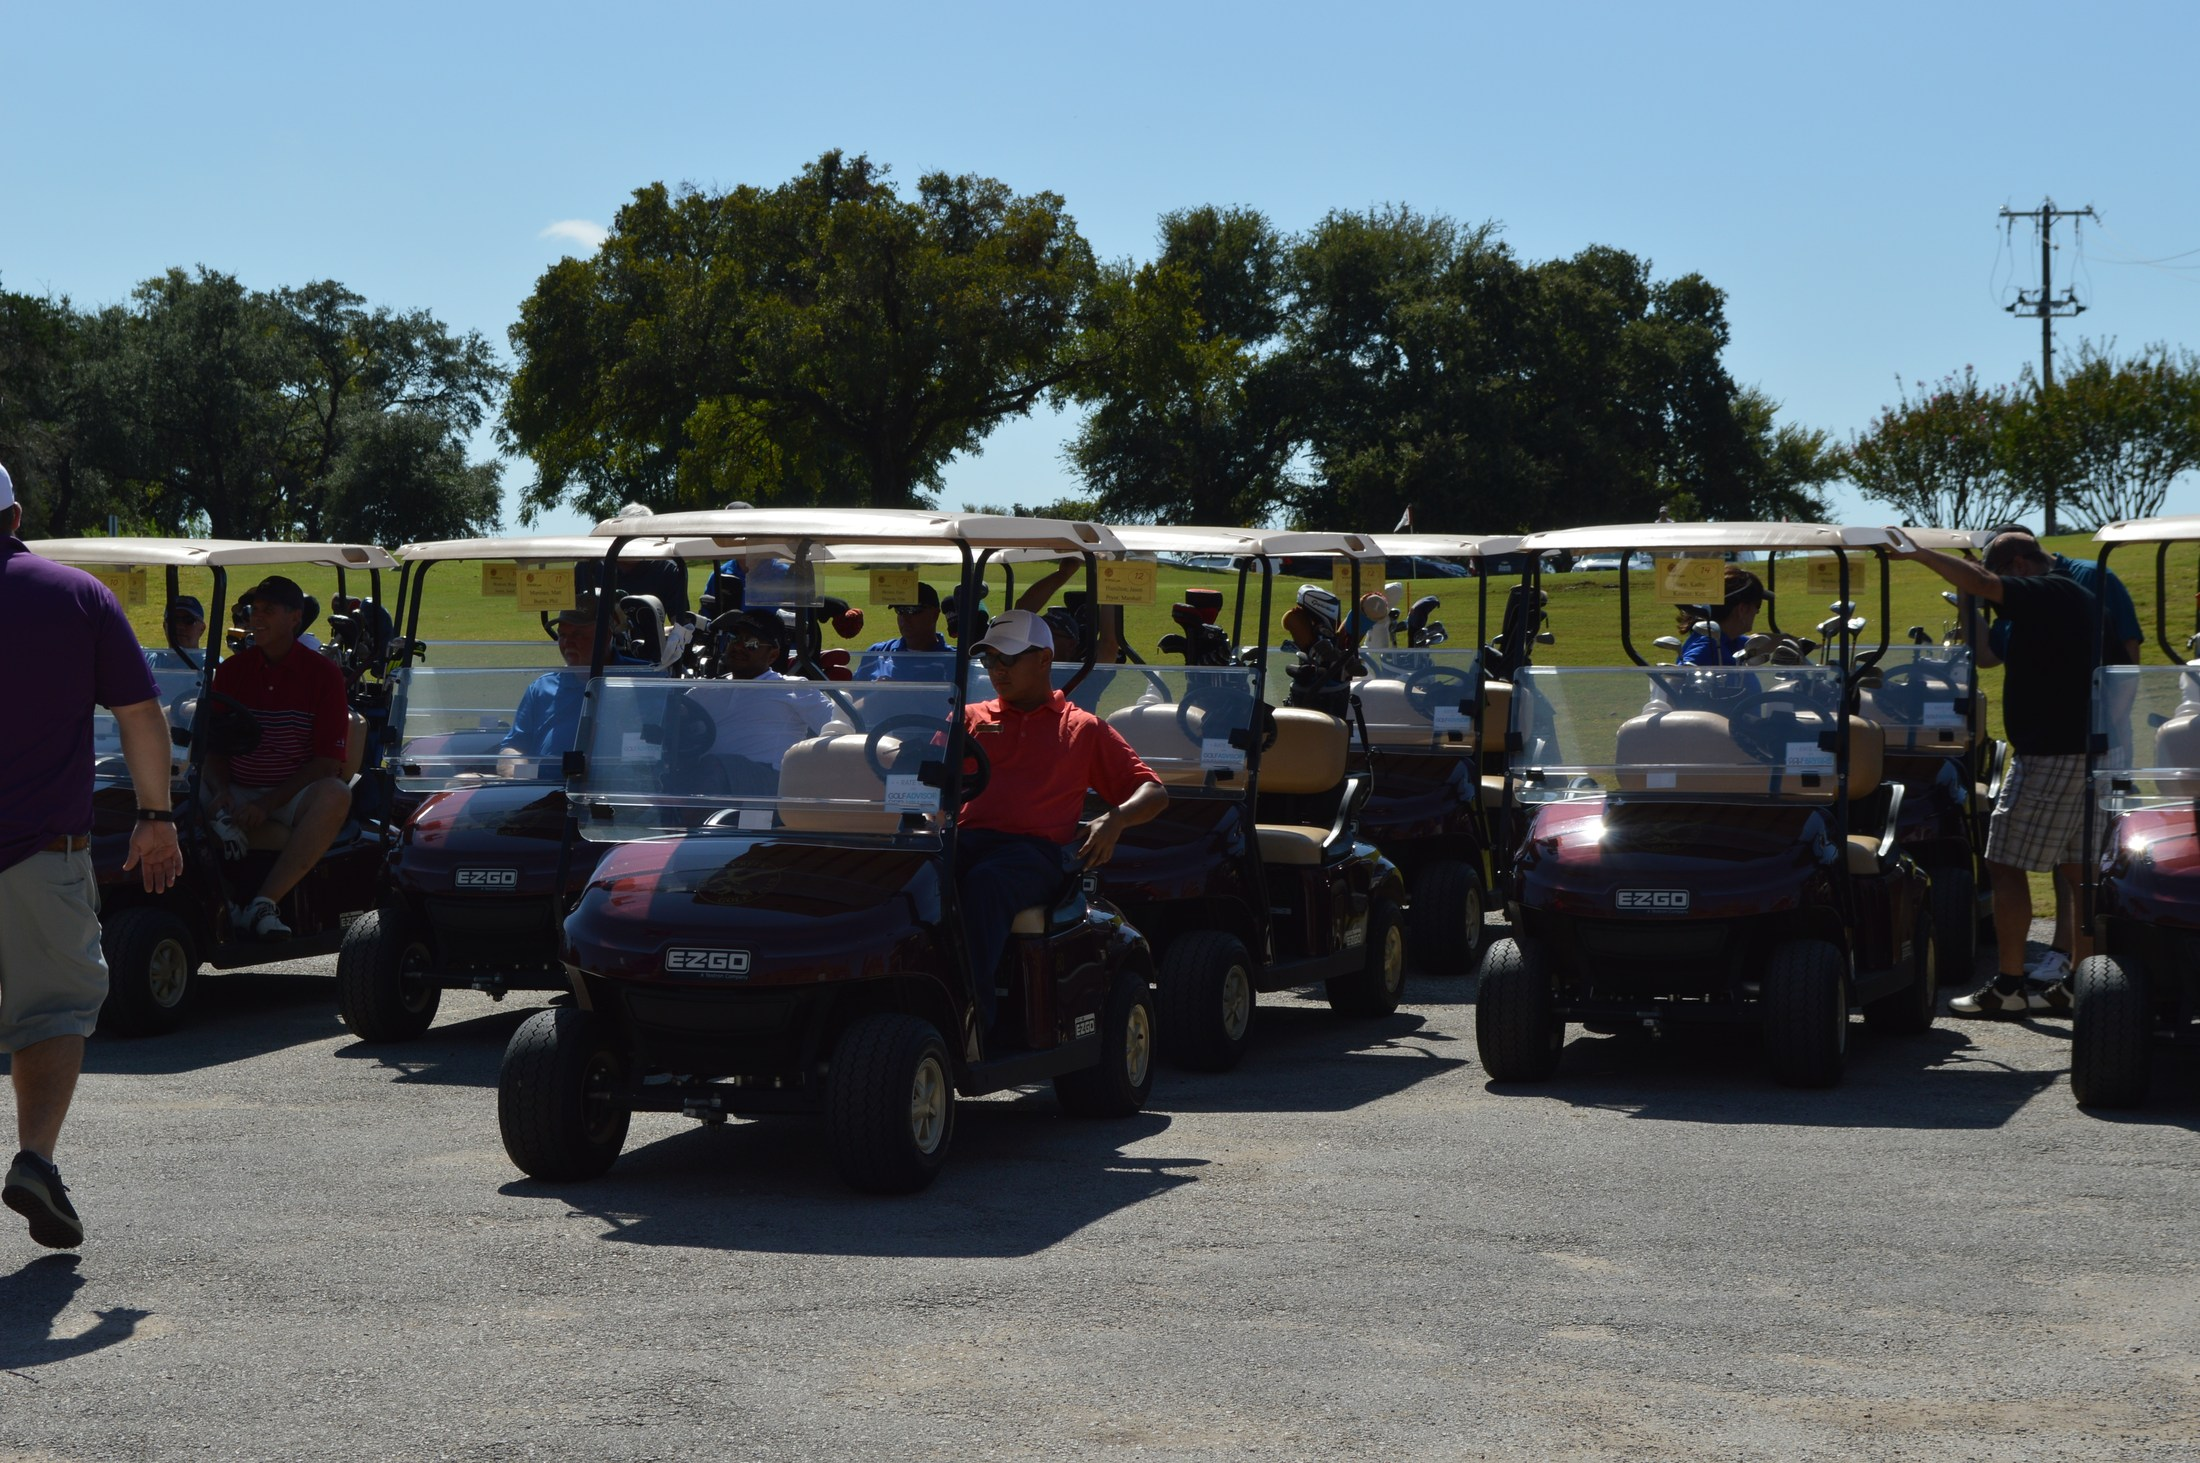 Golf Tournament: Golf carts ready to go